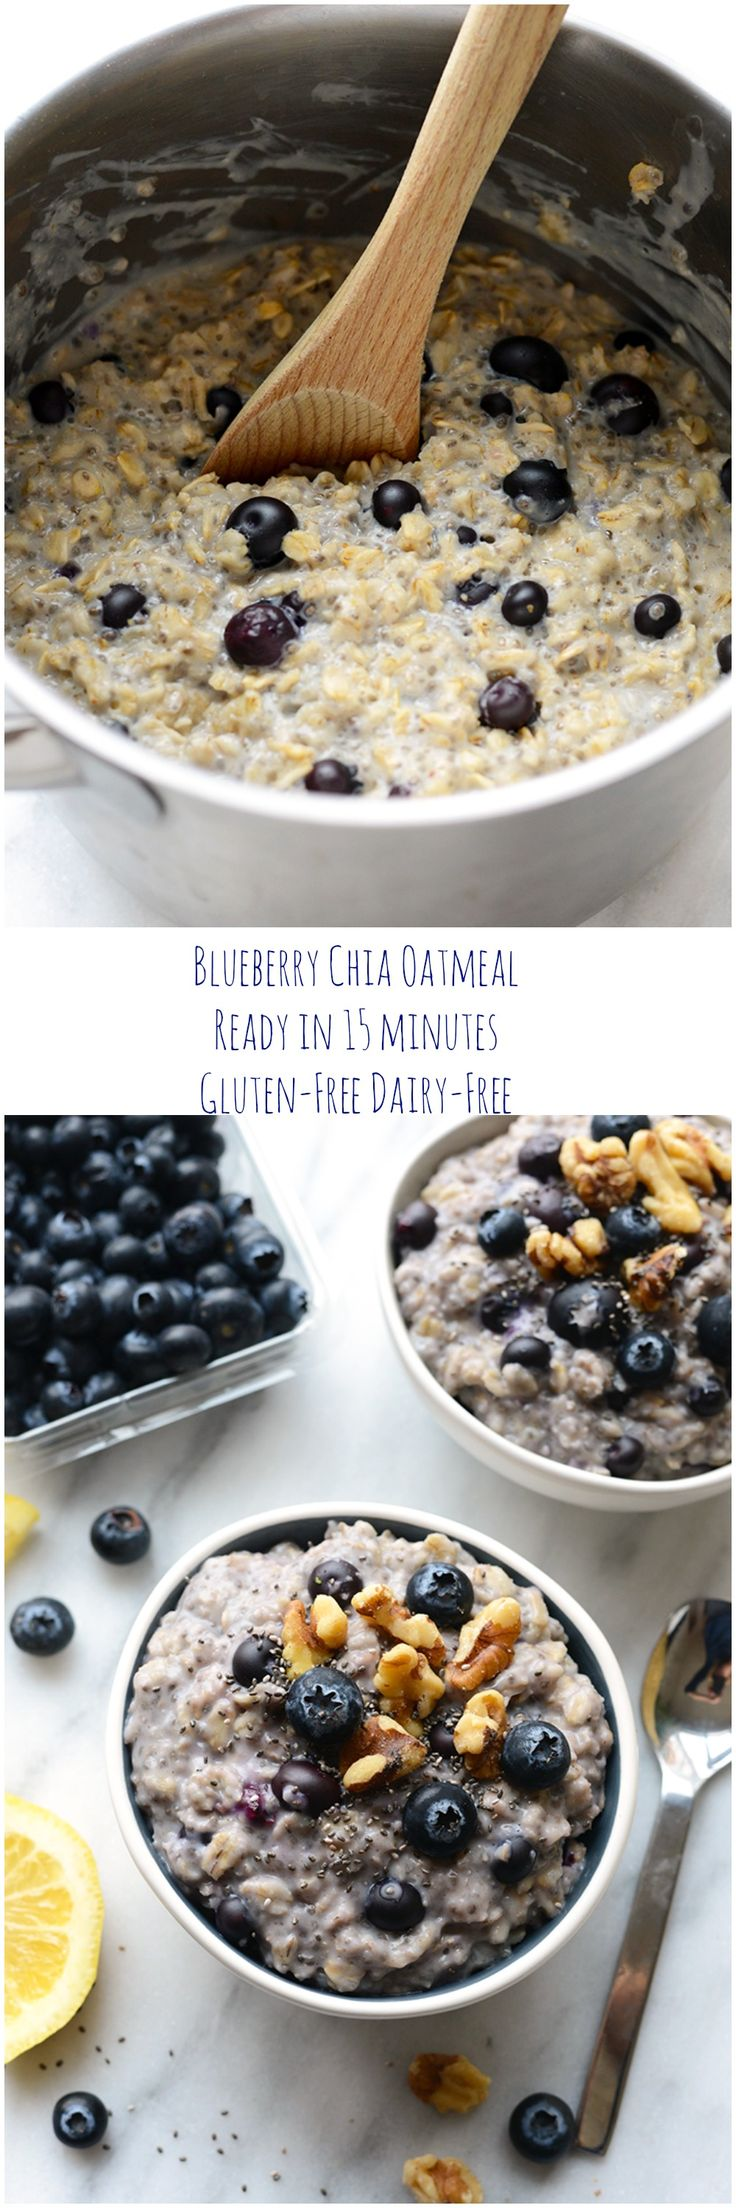 Blueberry Chia Oatmeal from fit Foodie Finds #glutenfree #dairyfree